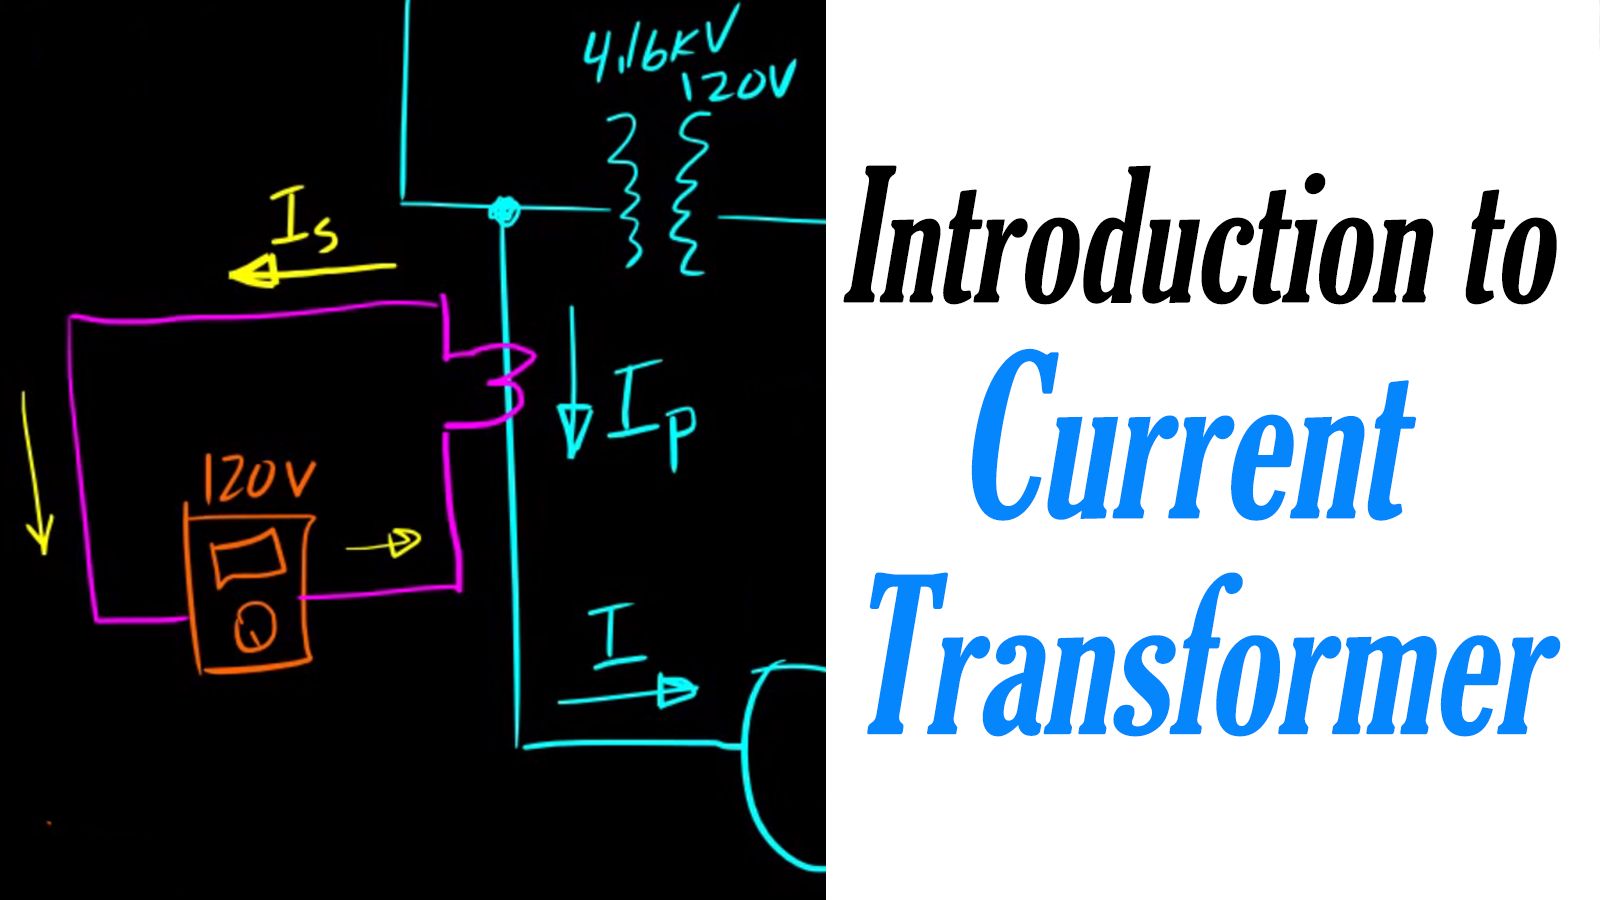 Introduction to Current Transformer